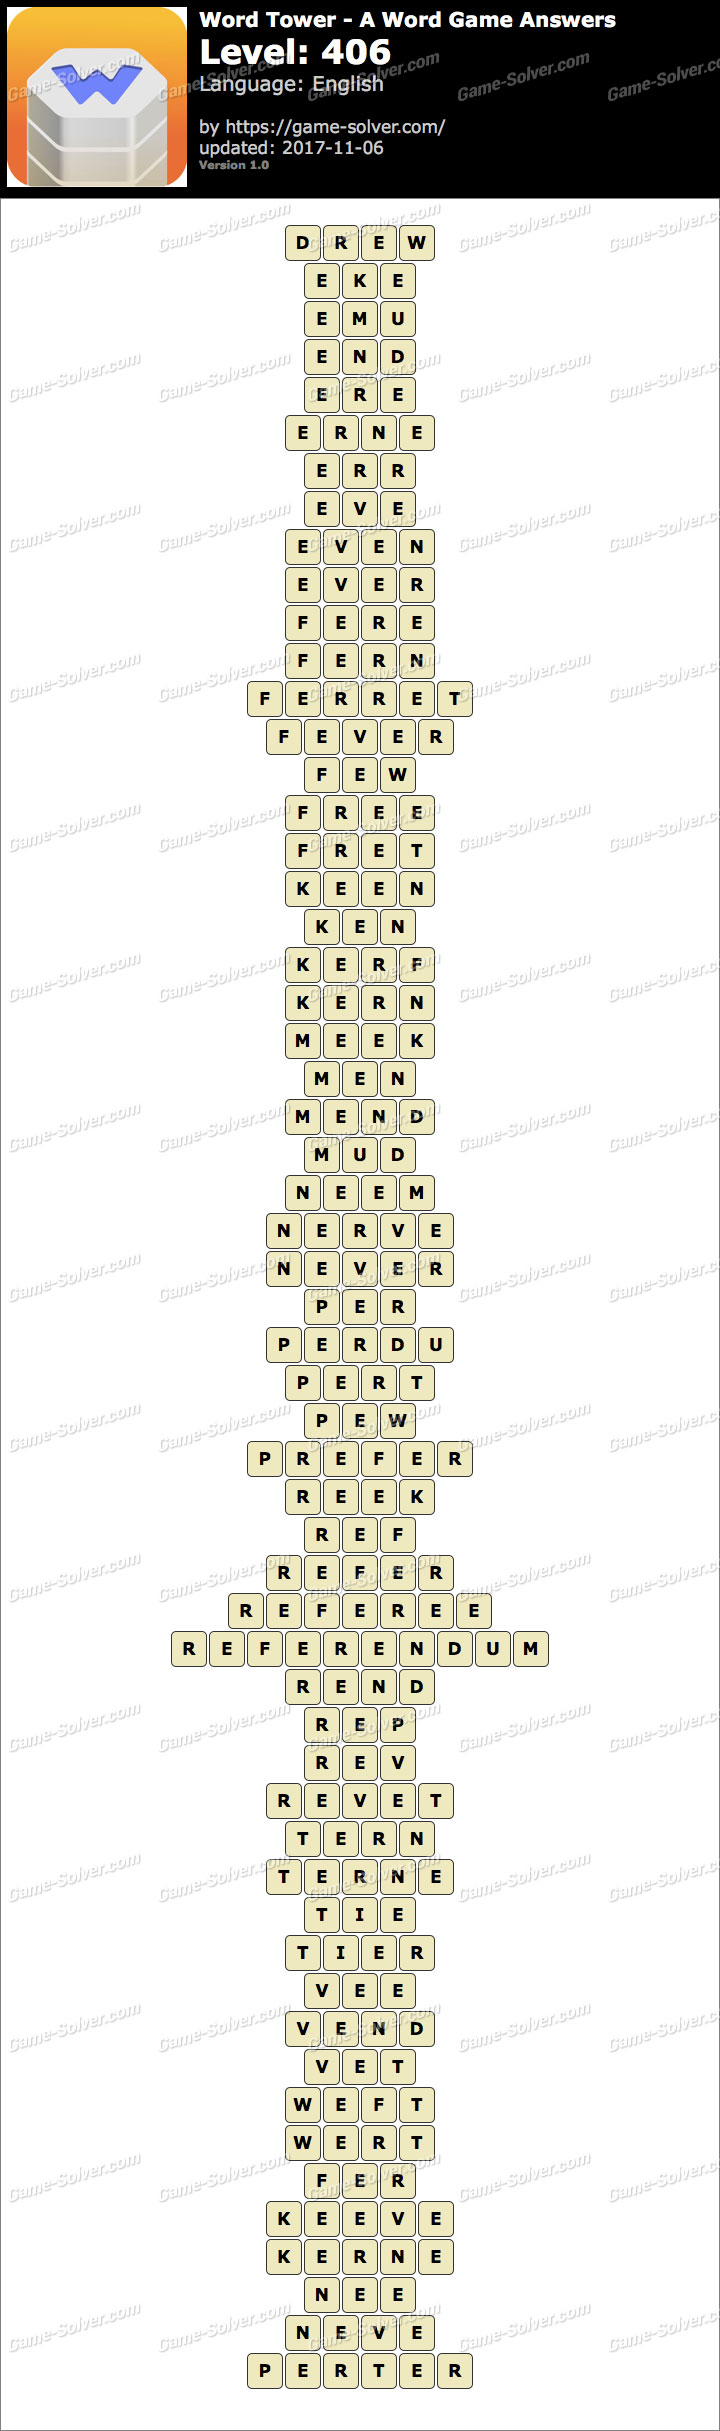 Word Tower Level 406 Answers